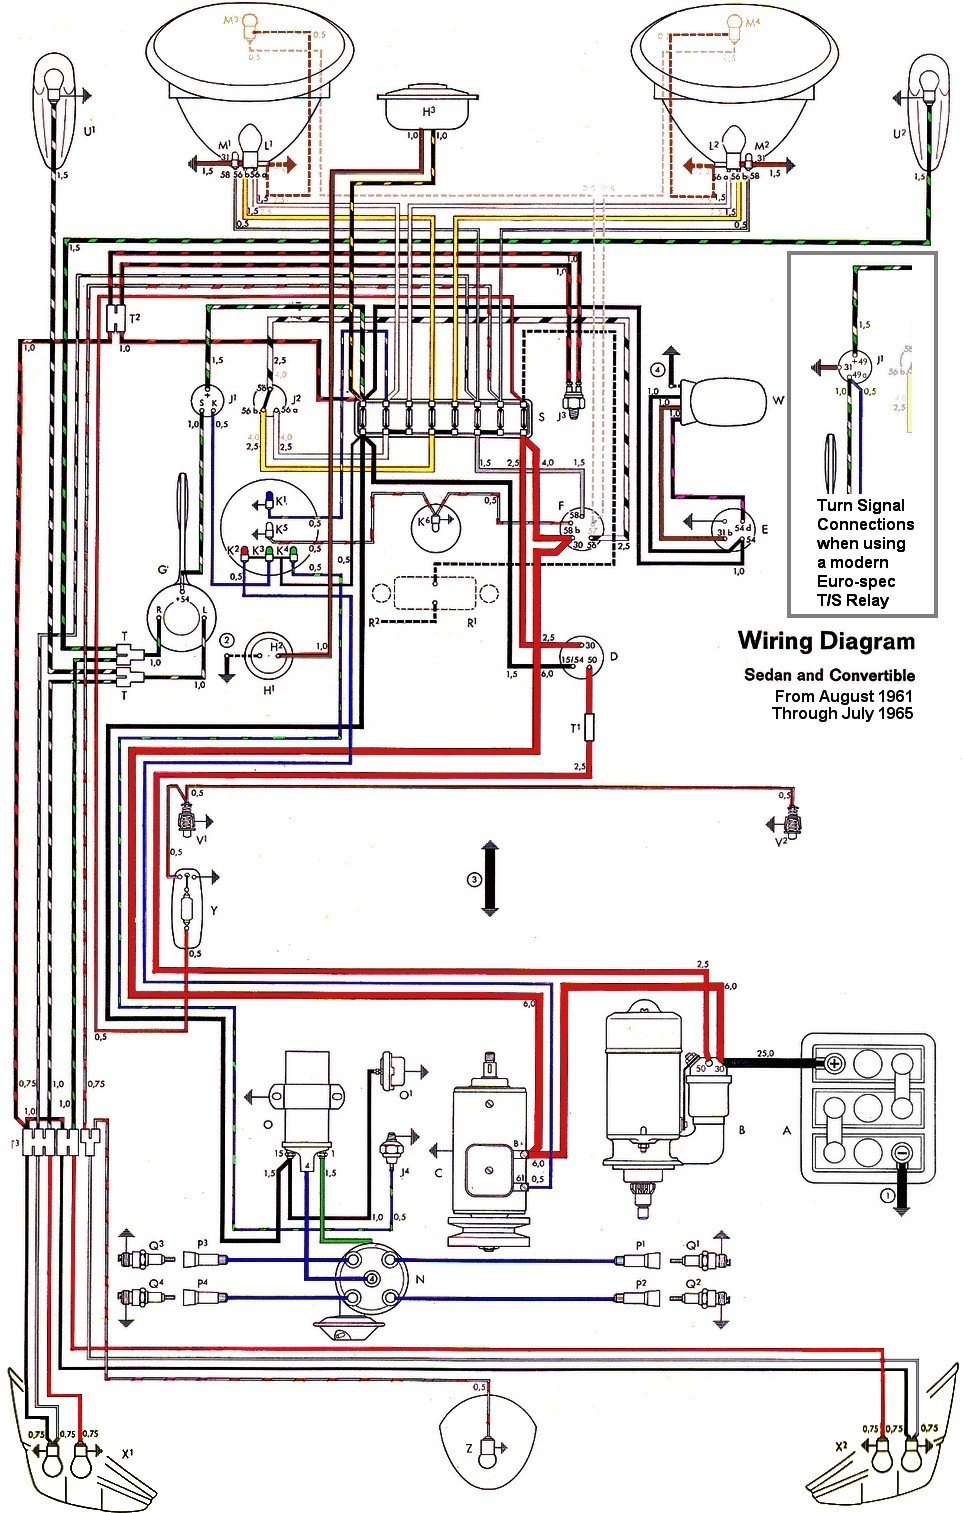 bug_62 65withinset wiring diagram vw beetle sedan and convertible 1961 1965 vw 1971 vw bus wiring diagram at n-0.co